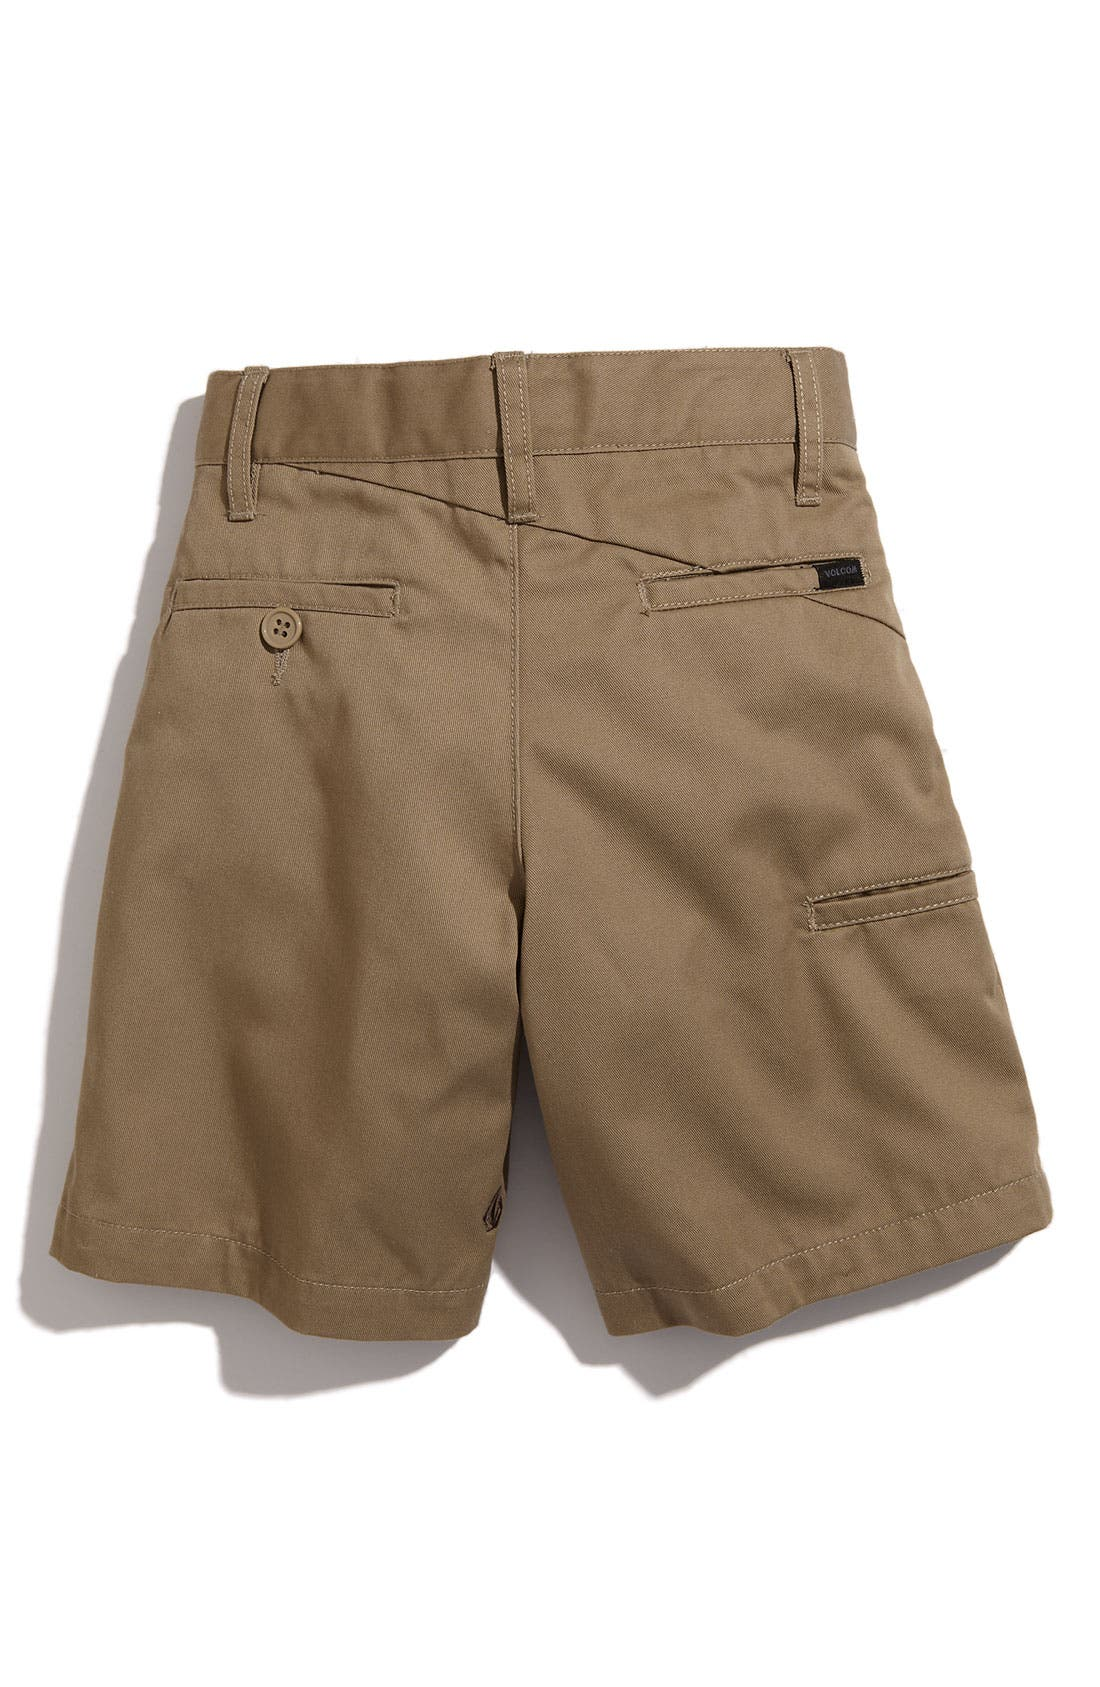 Alternate Image 2  - Volcom 'Modern' Chino Shorts (Toddler Boys)